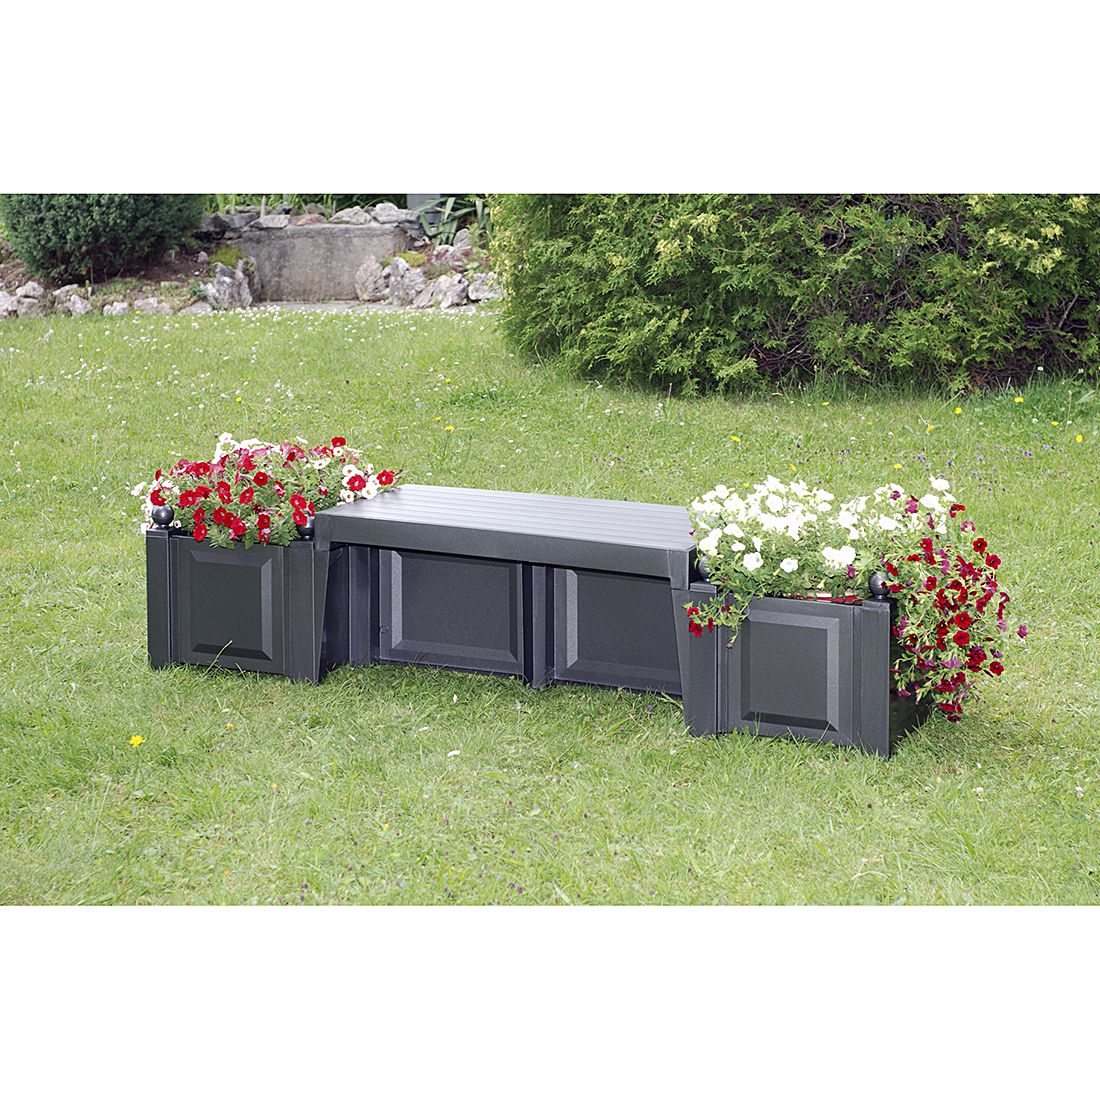 moderne gartenbank kunststoff 002706 eine. Black Bedroom Furniture Sets. Home Design Ideas